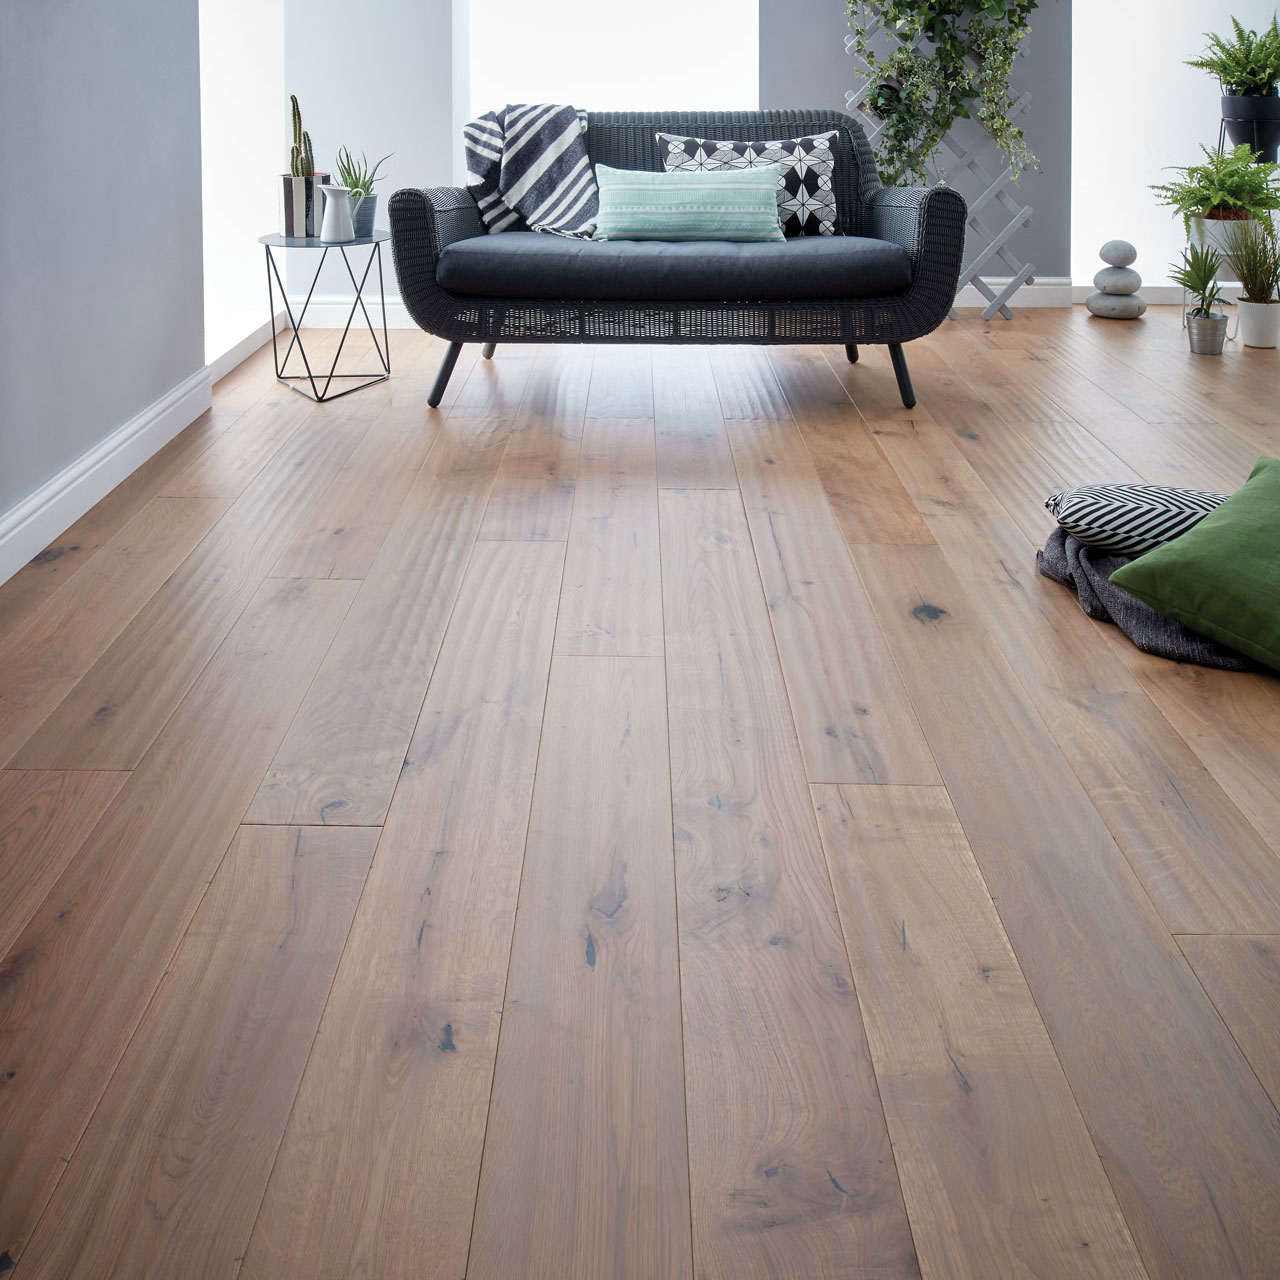 product-engineered-wood-berkley-washed-oak-room